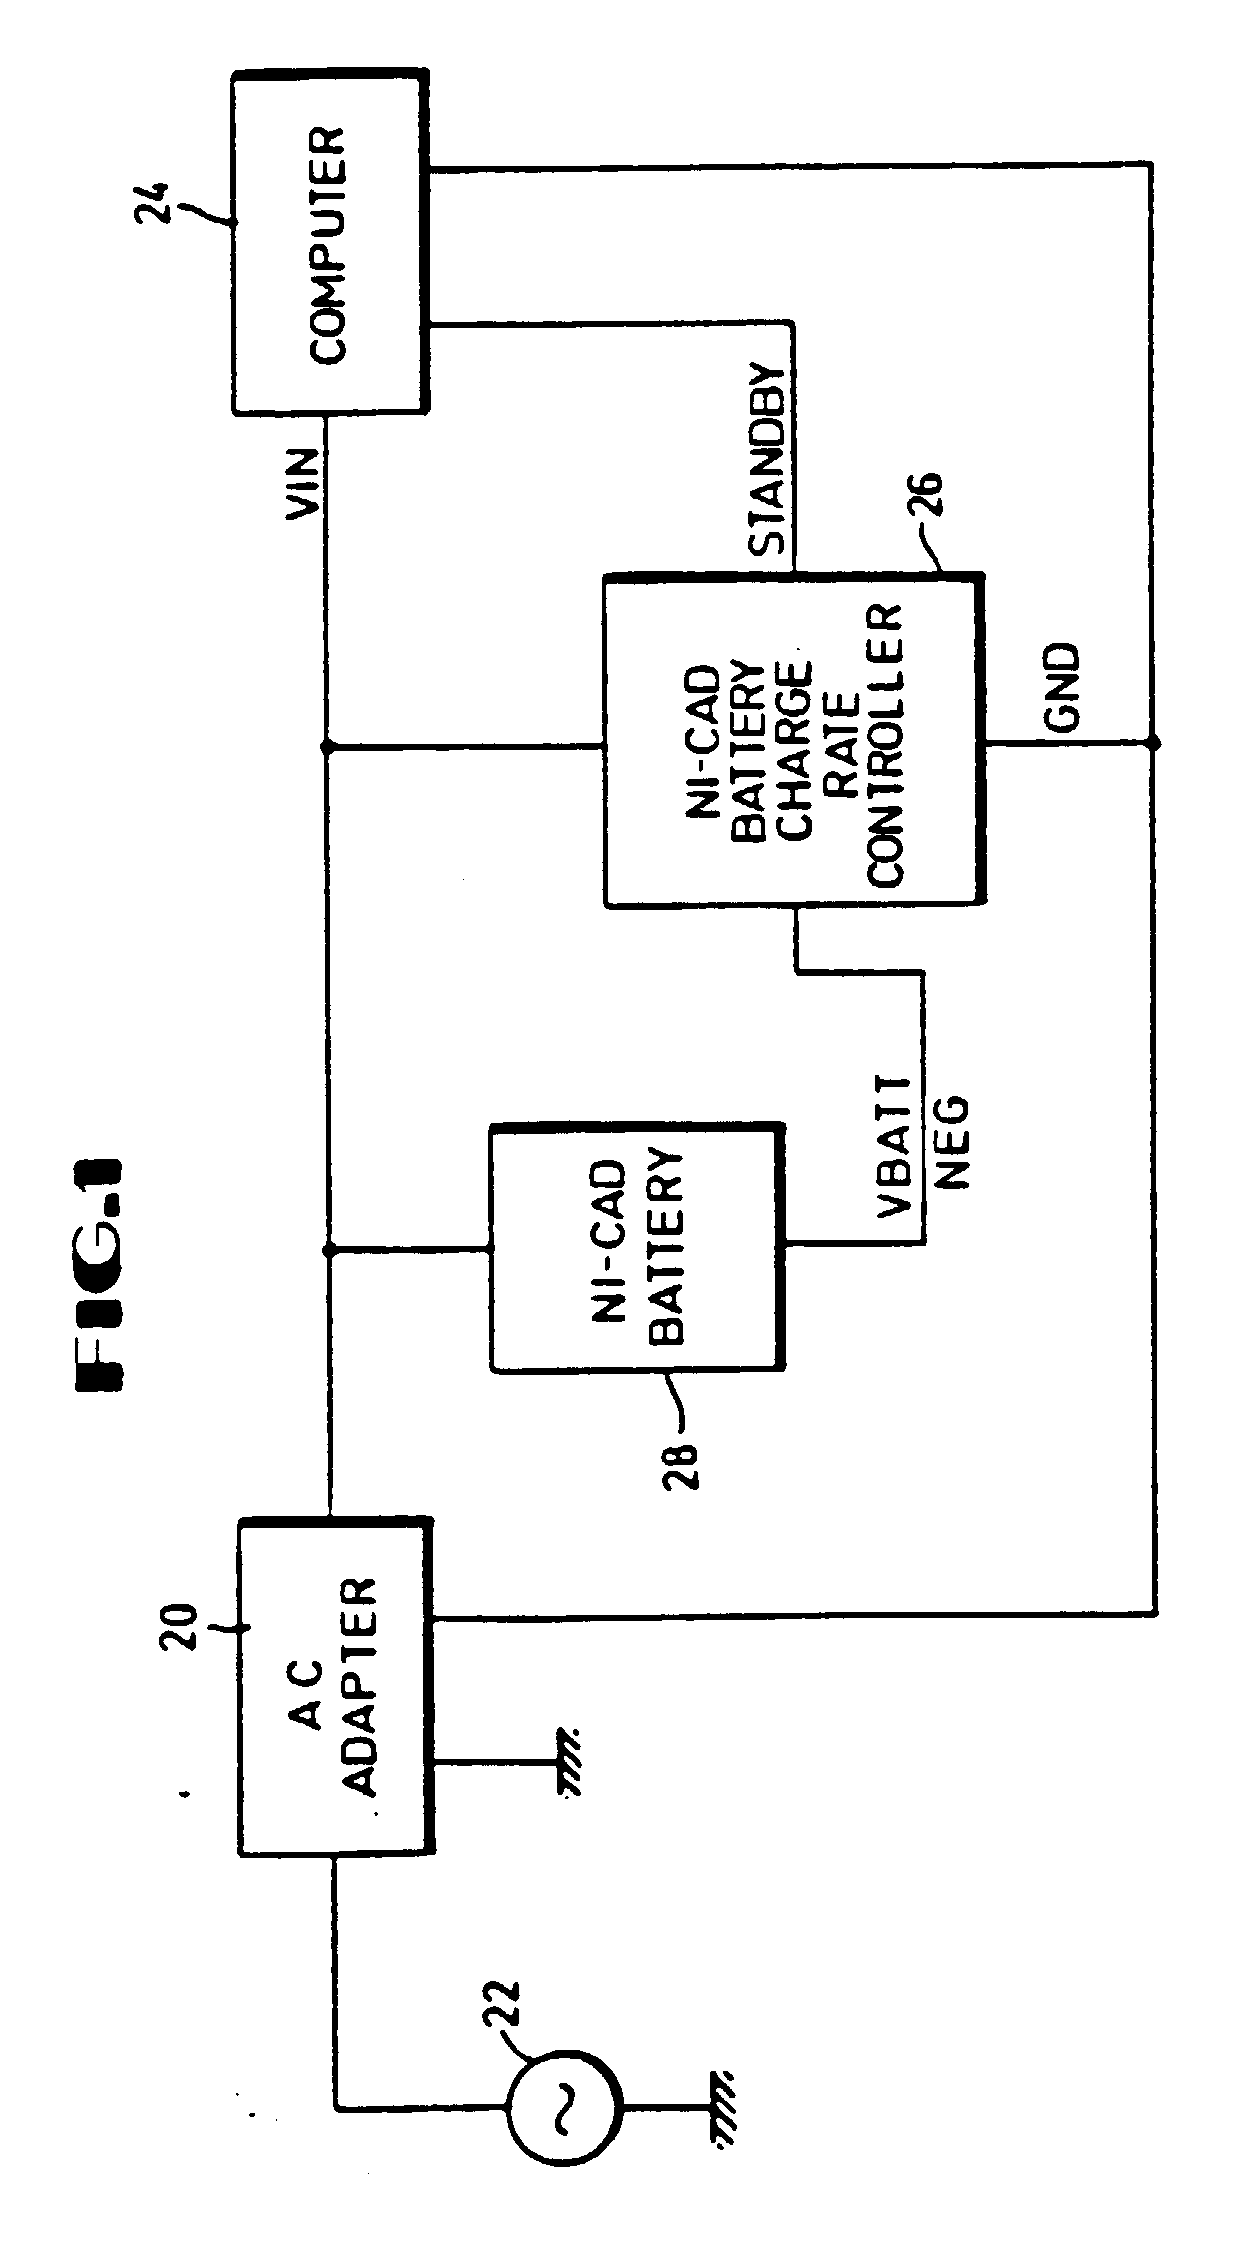 patent ep0480648b1 - ni-cad battery charge rate controller